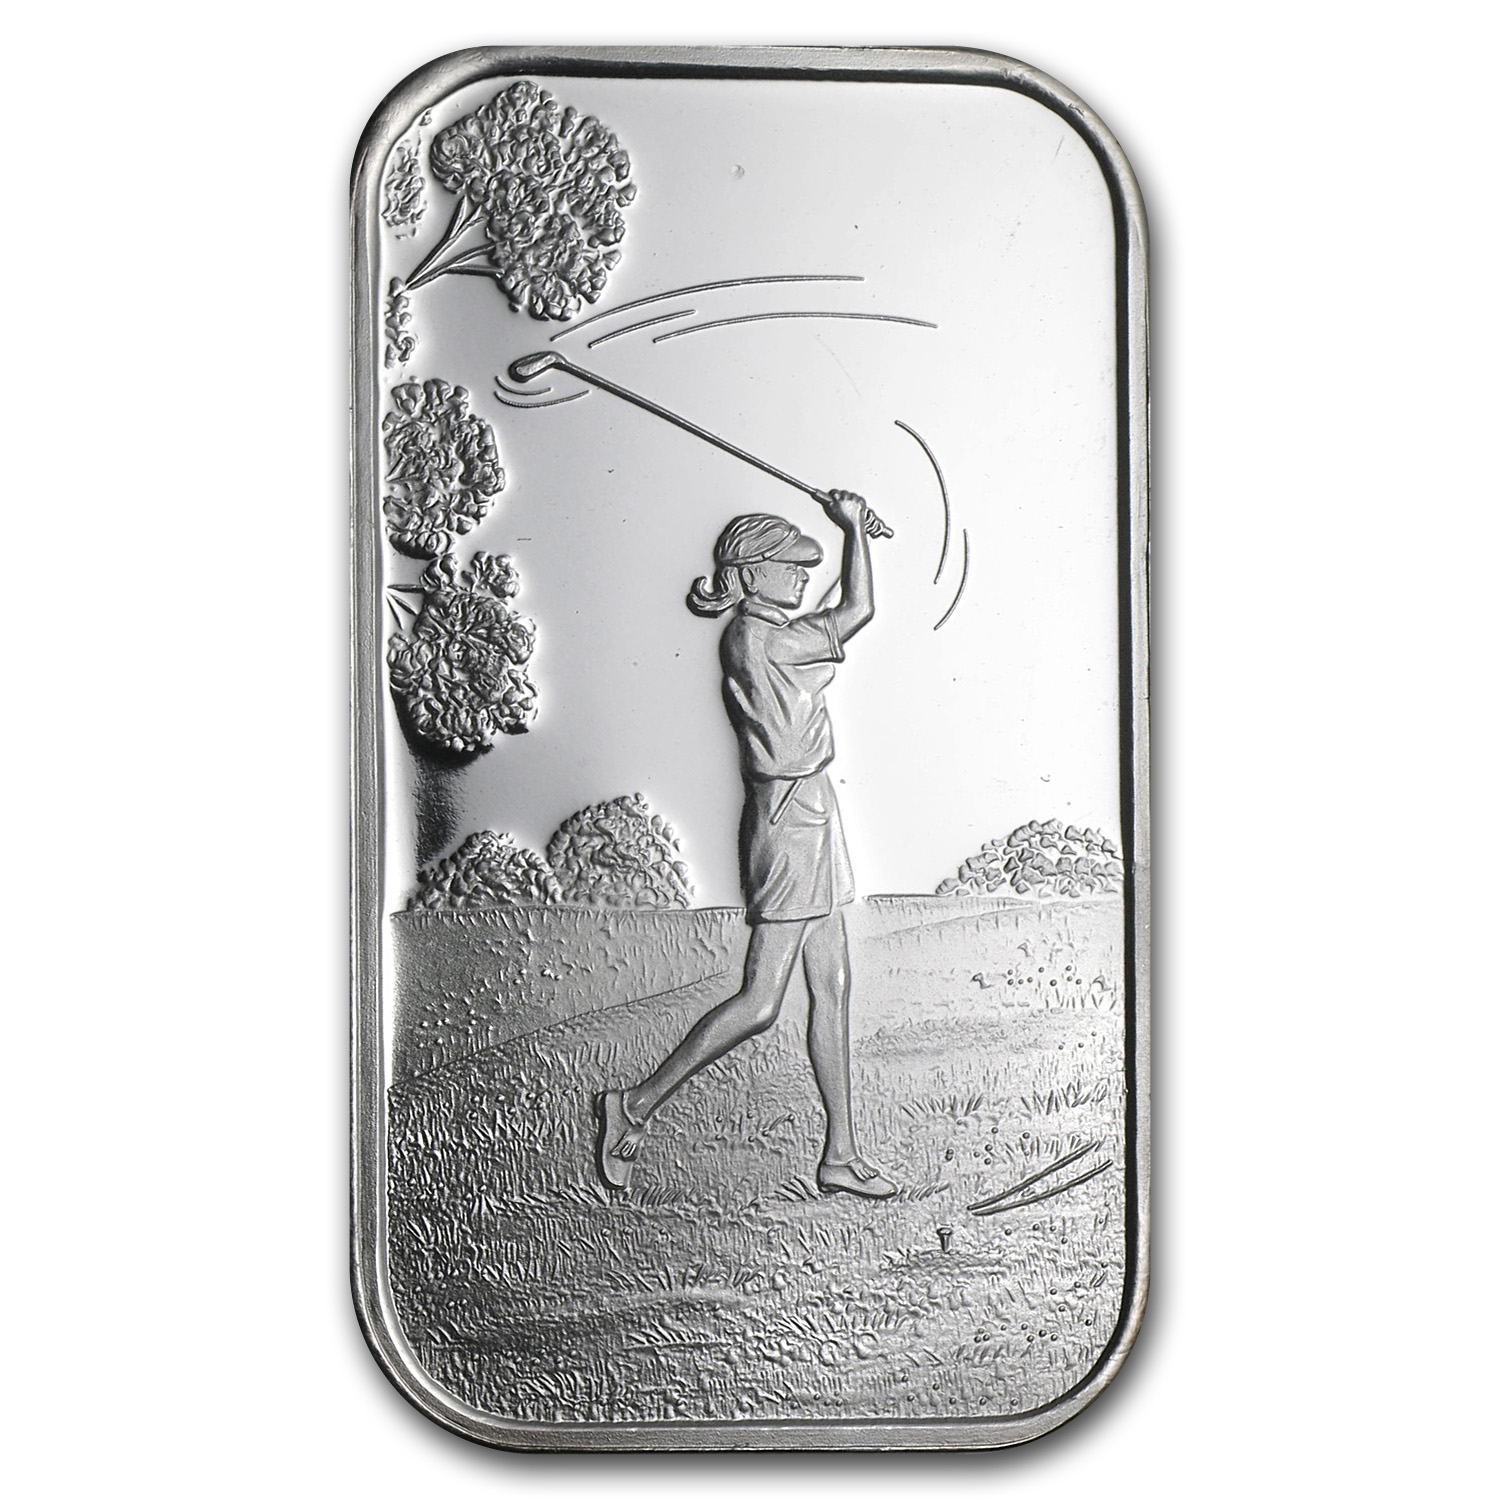 1 oz Silver Bar - Female Golfer